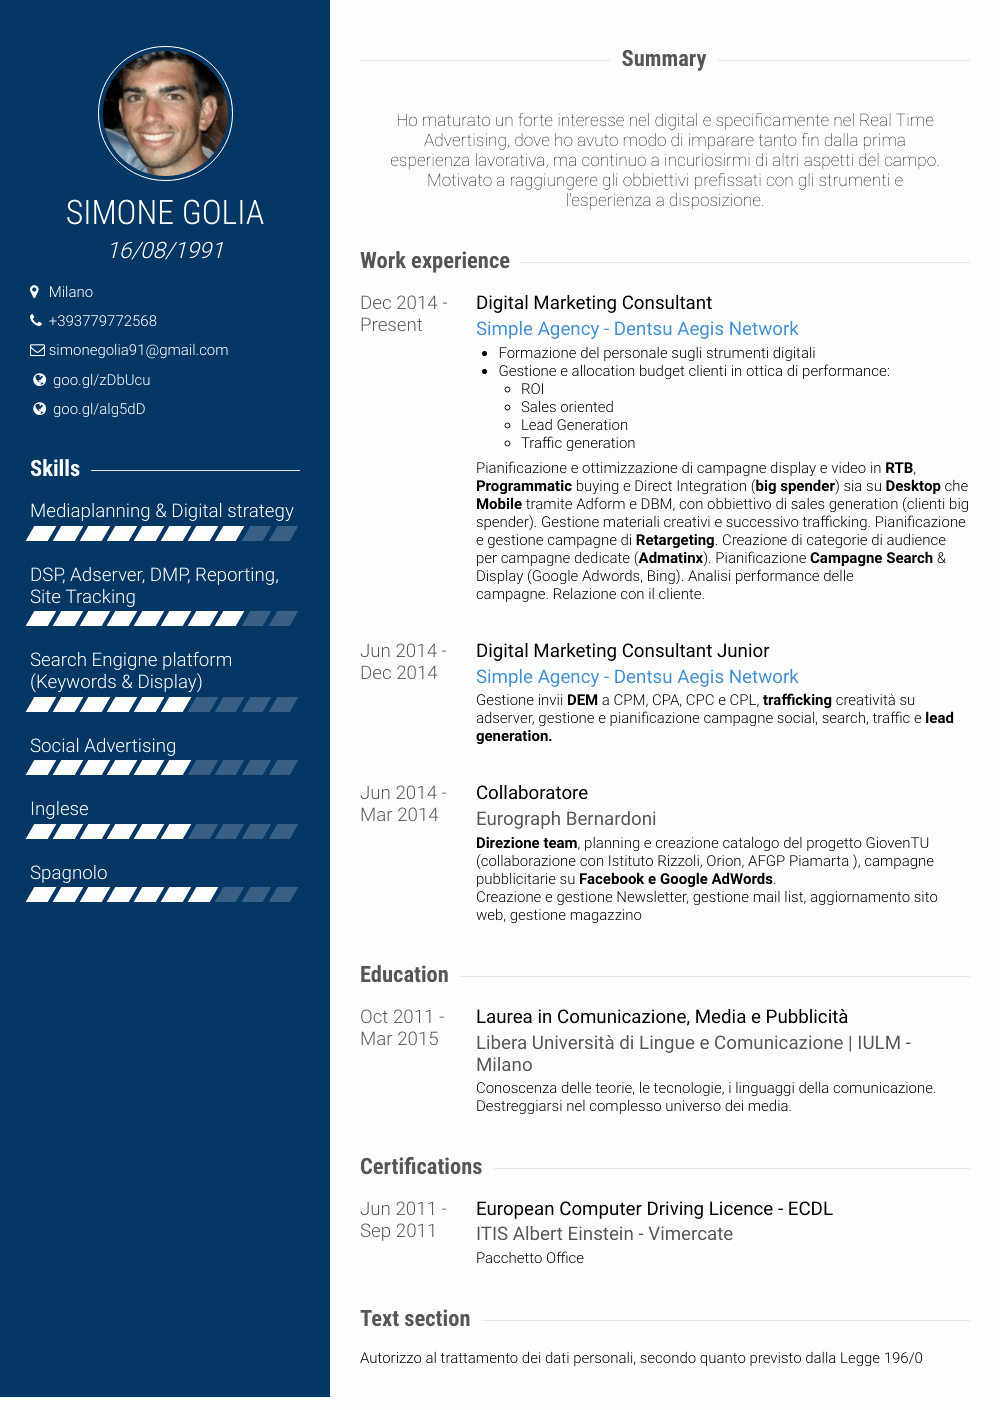 Digital Marketing Resume Sample Luxury Digital Marketing Consultant Resume Samples & Templates